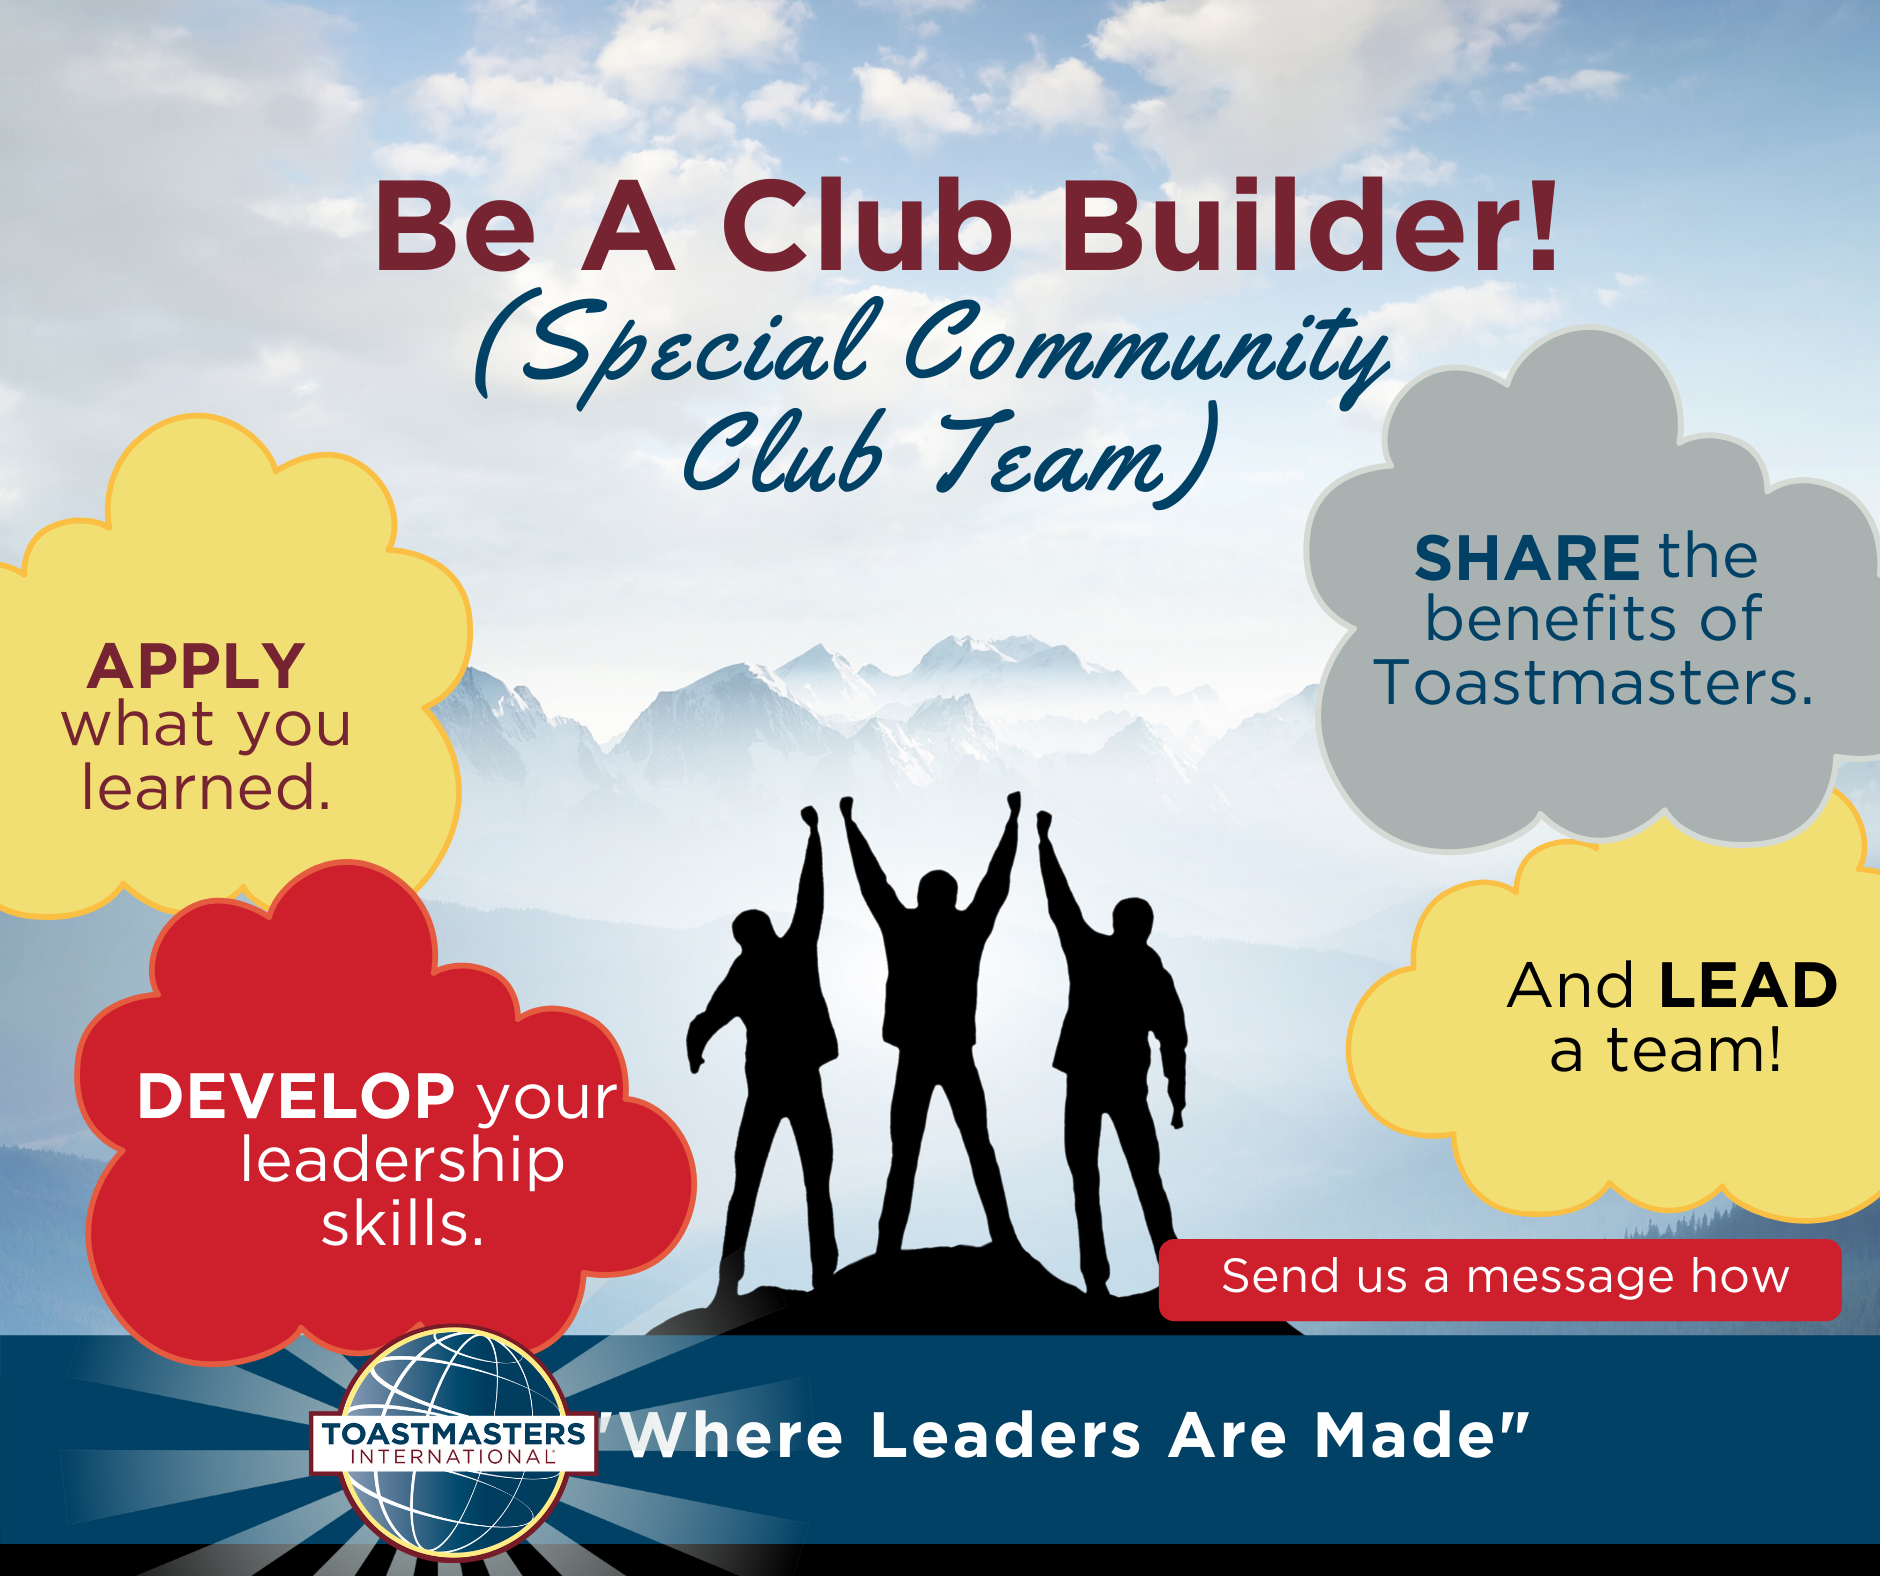 BE A CLUB BUILDER!